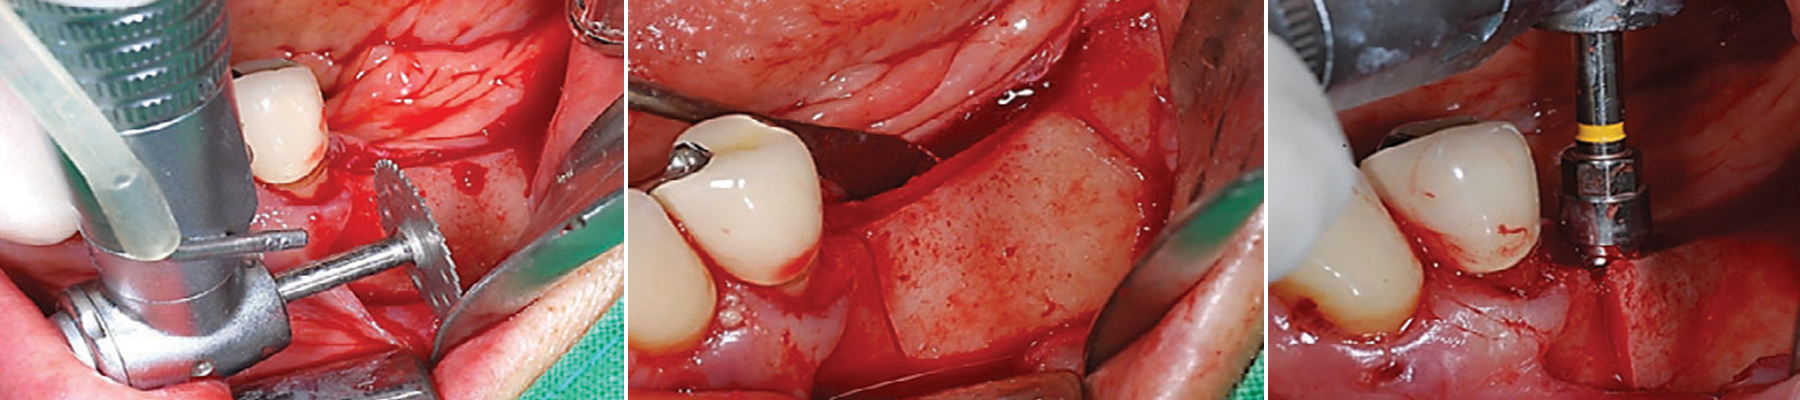 Intra-operative view